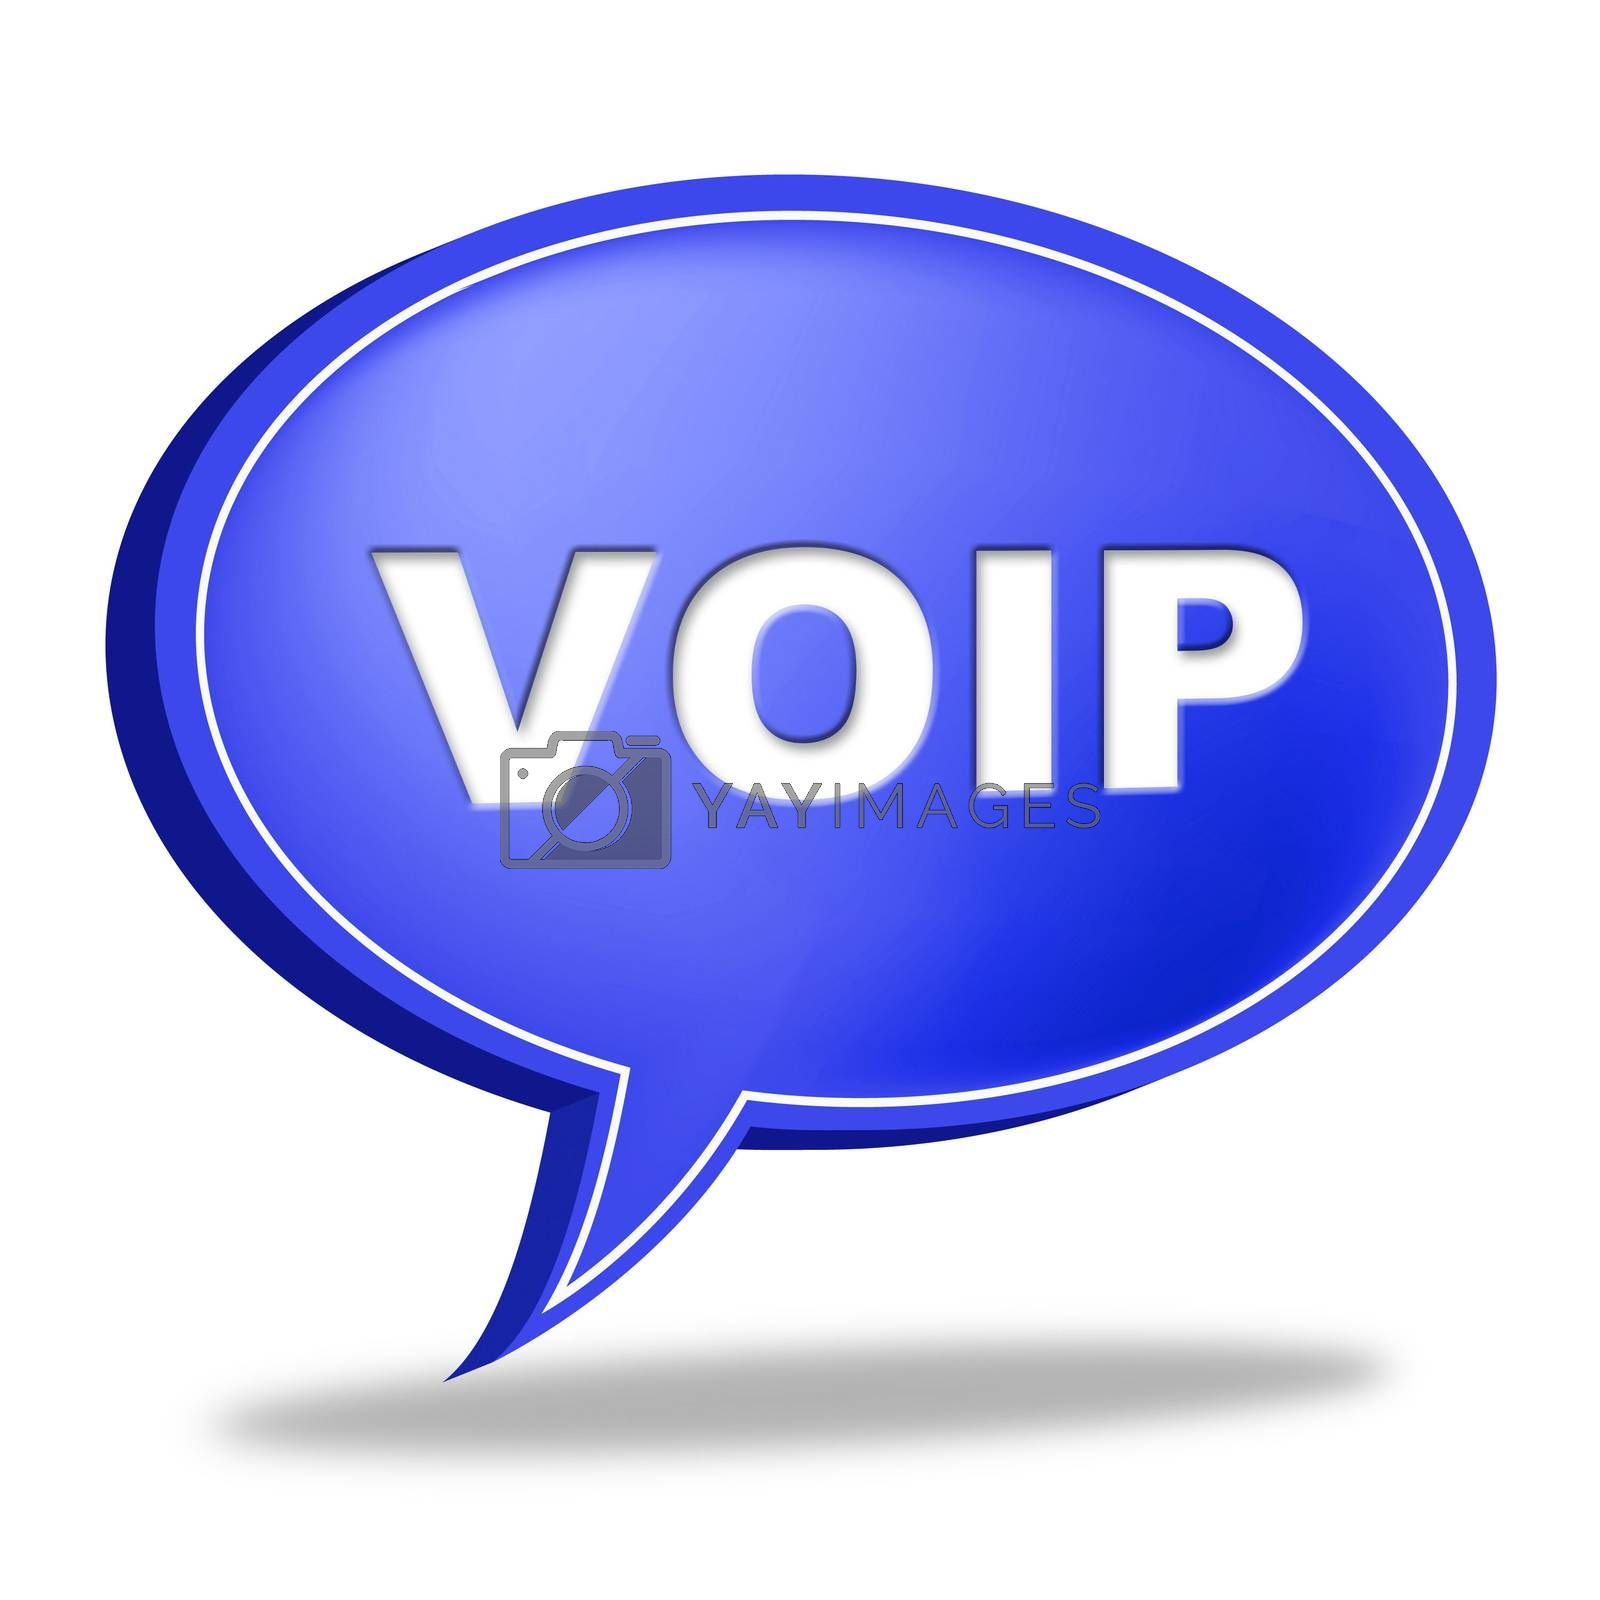 Voip Speech Bubble Means Voice Over Broadband And Online by stuartmiles